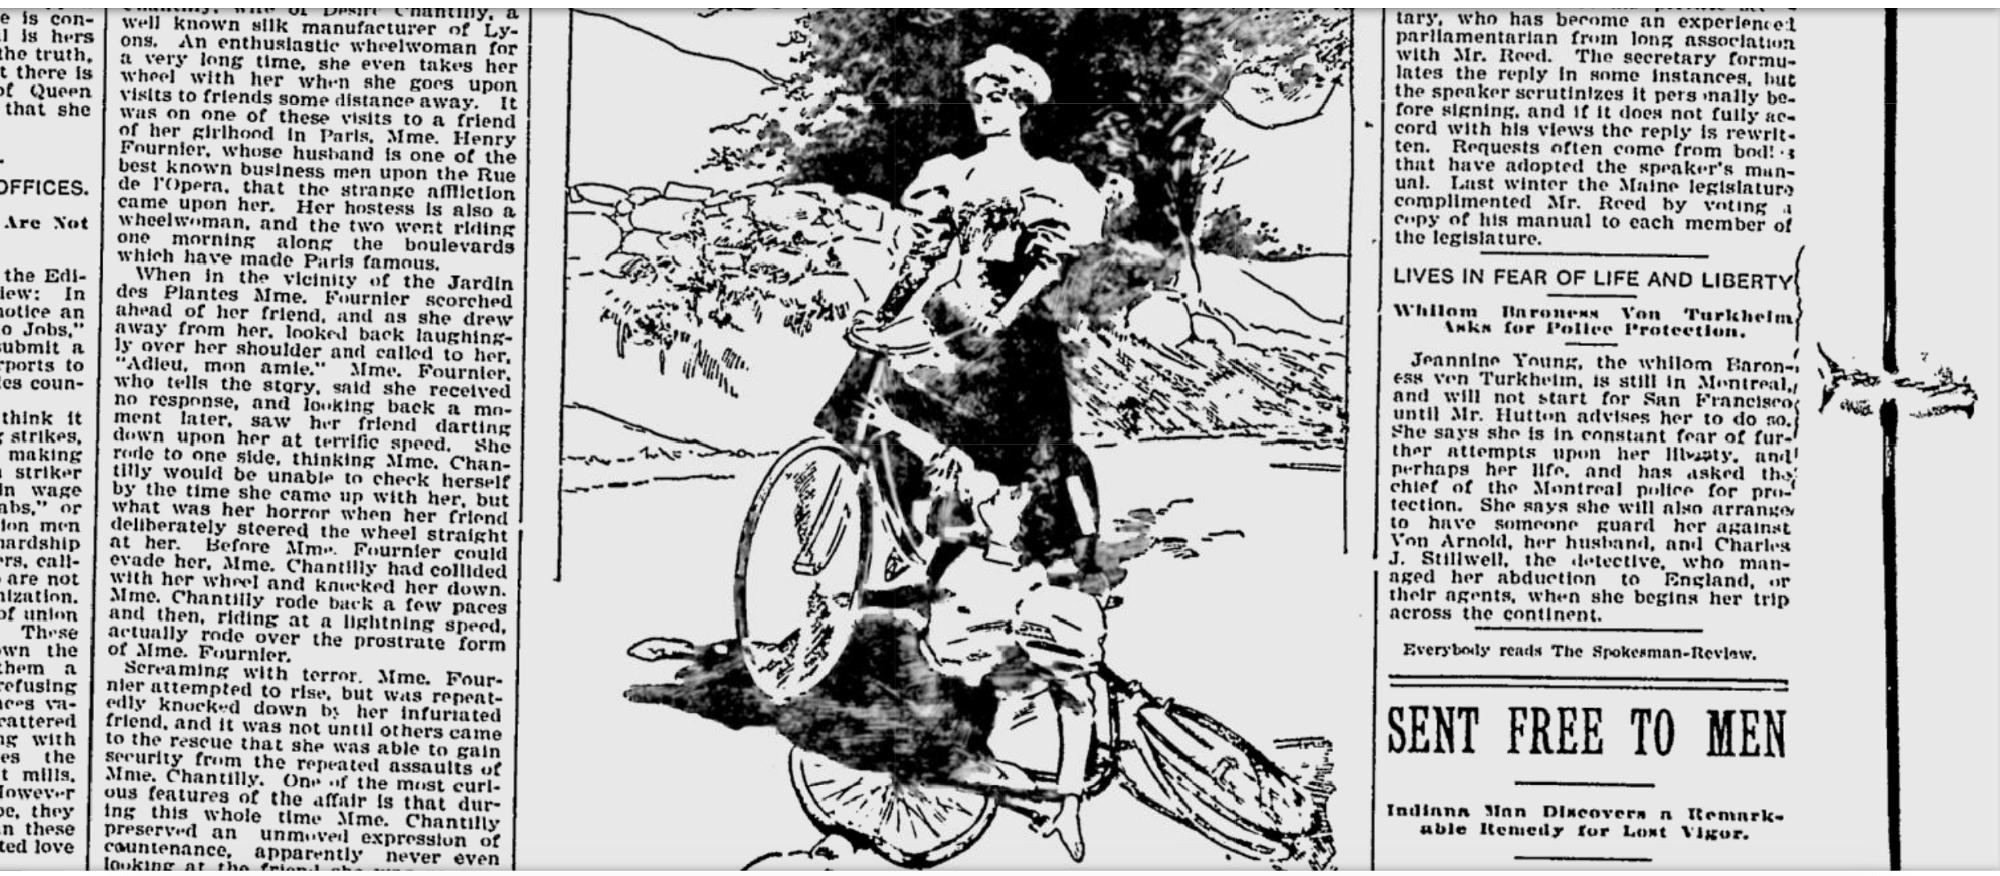 The piece suggested it wasn't just sartorial insanity cycling could trigger in women, but full blown psychopathy.